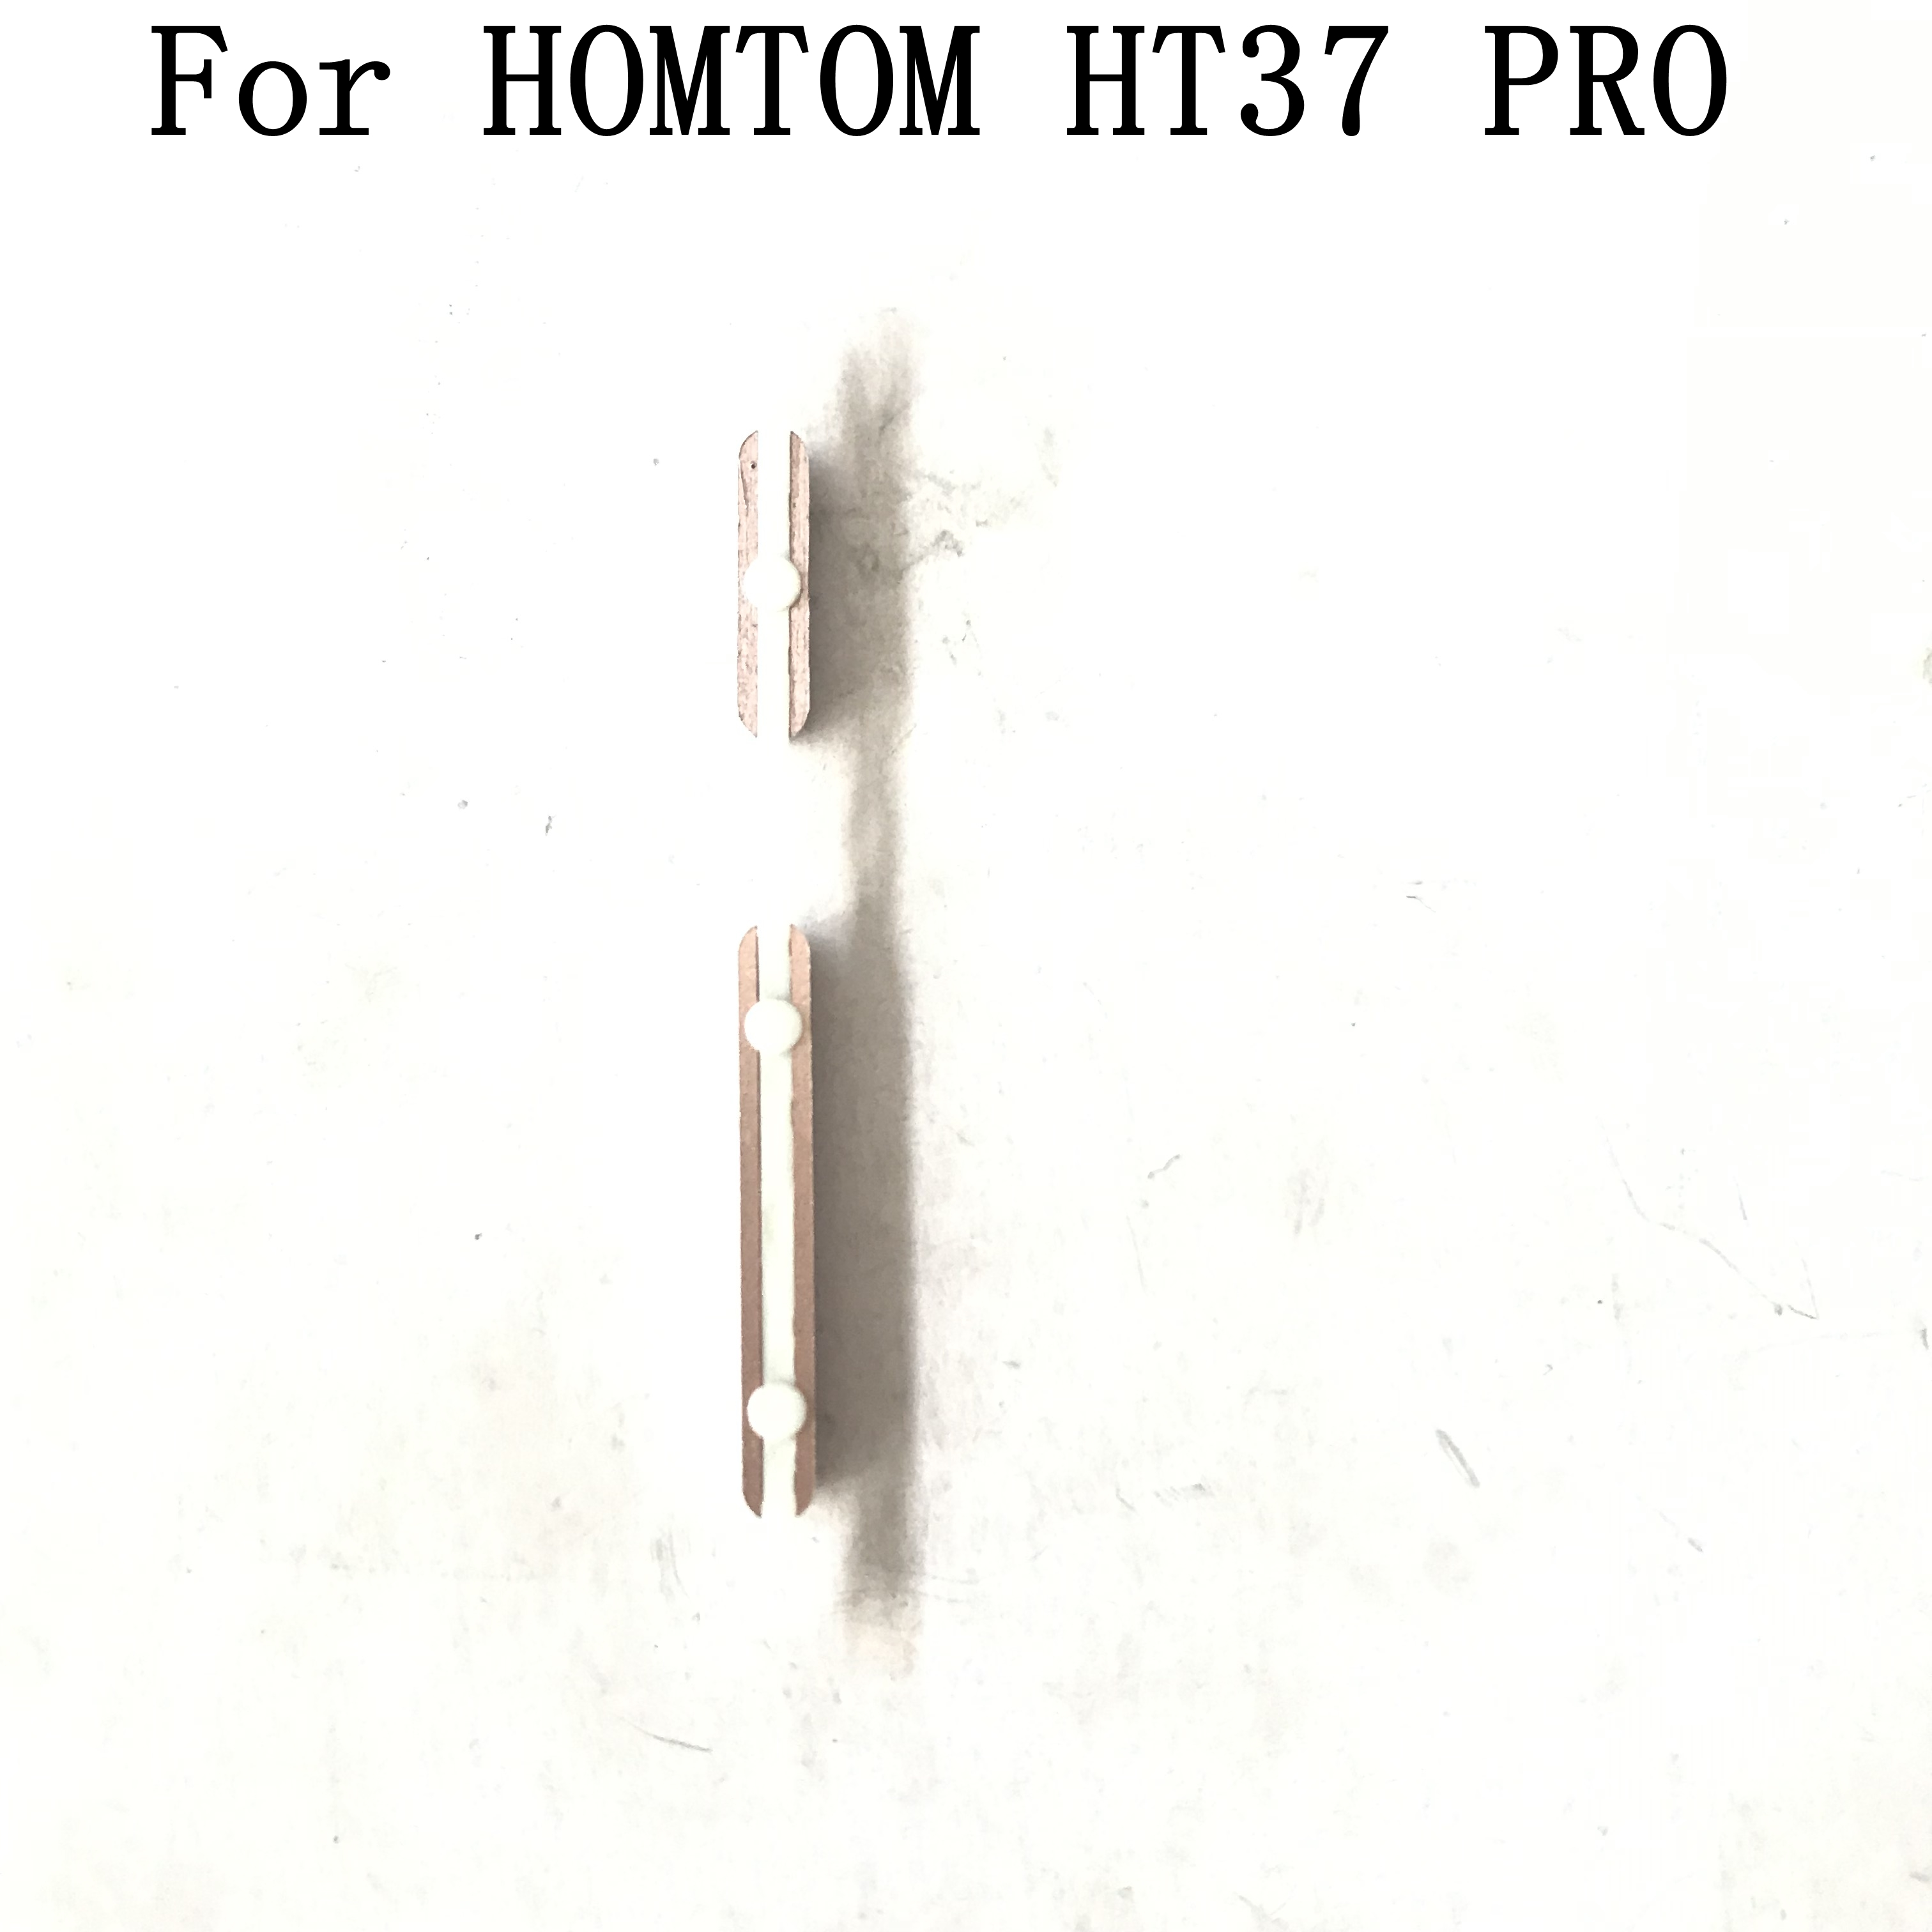 HOMTOM HT37 PRO Used Volume Up / Down Button+Power Key Button For HOMTOM HT37 PRO Repair Fixing Part Replacement enlarge